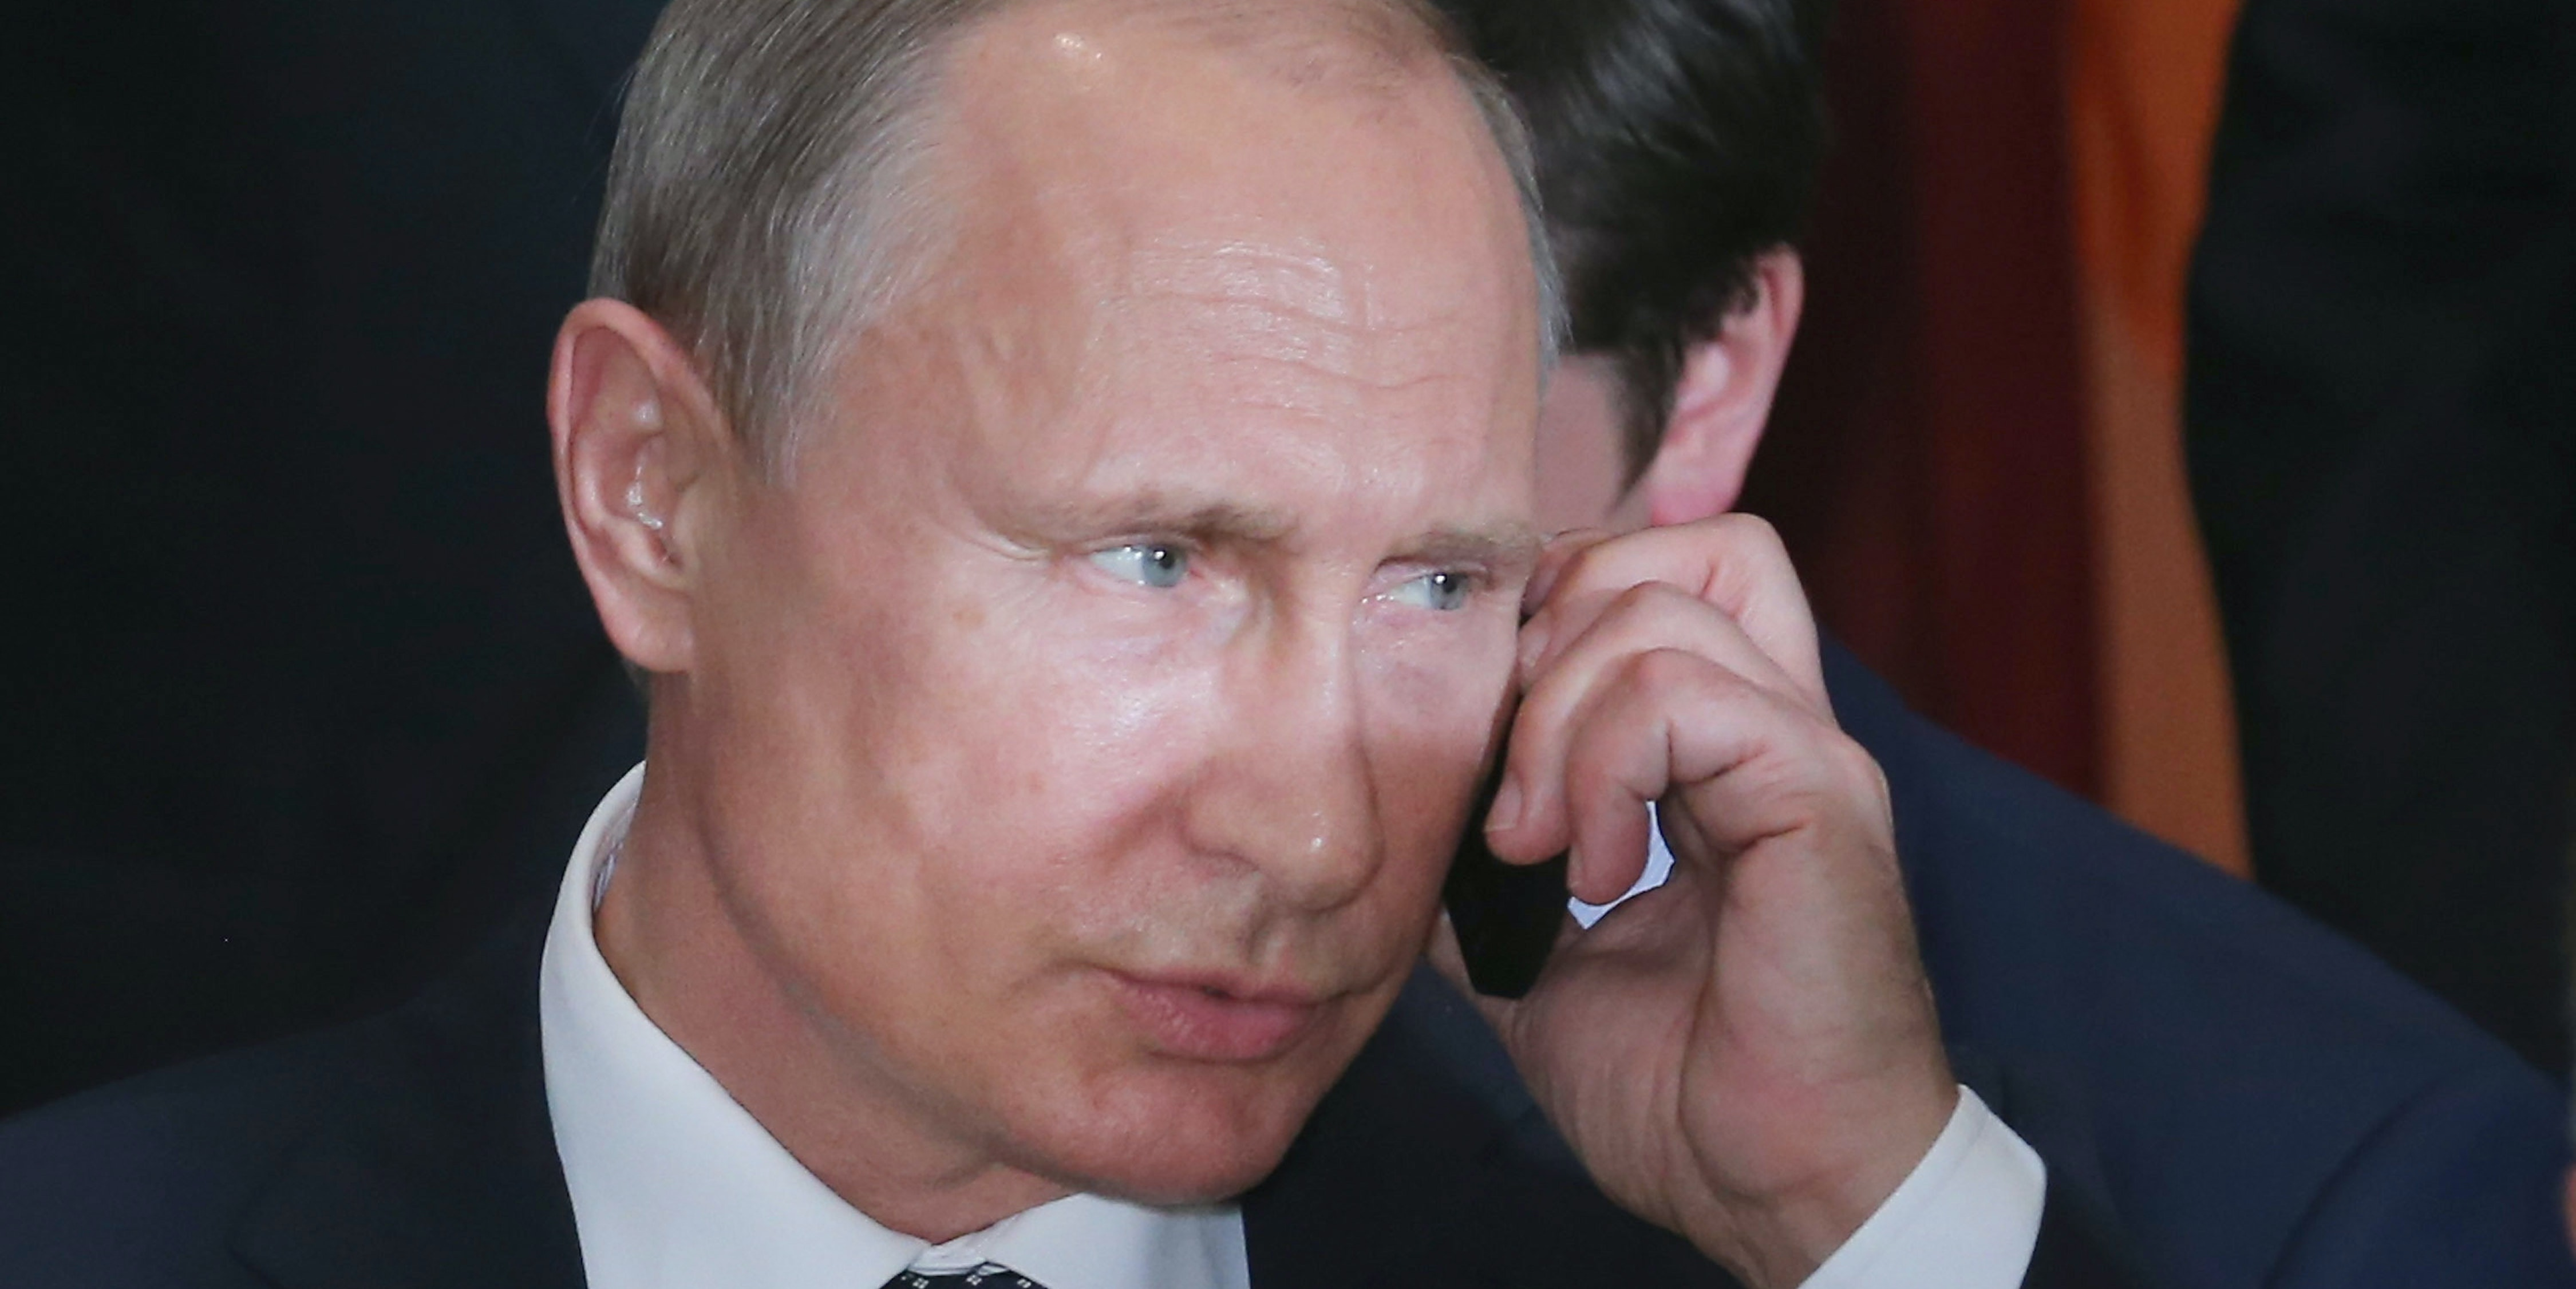 Russian President Vladimir Putin takes a call during a luncheon hosted by United Nations Secretary-General Ban Ki-moon at the 70th annual UN General Assembly at the UN headquarters September 28, 2015 in New York City.